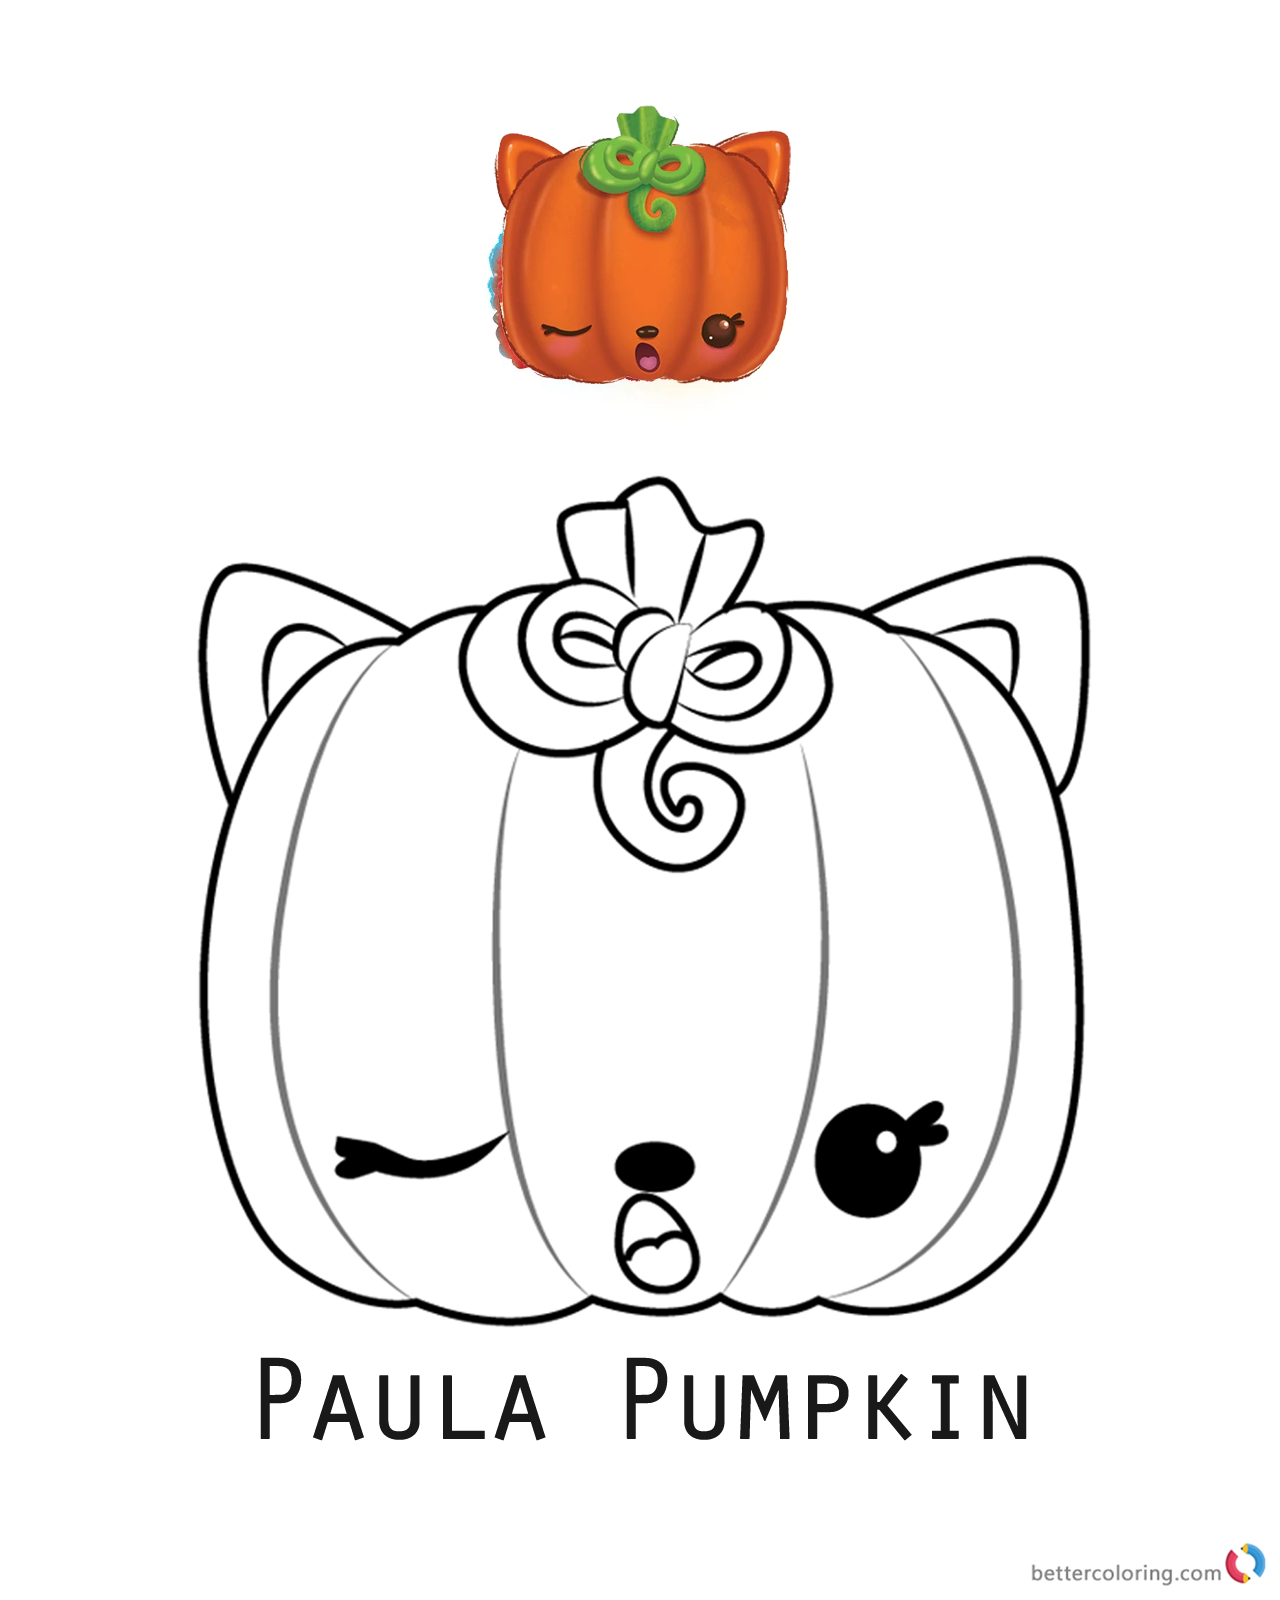 Paula Pumpkin from Num Noms coloring pages printable